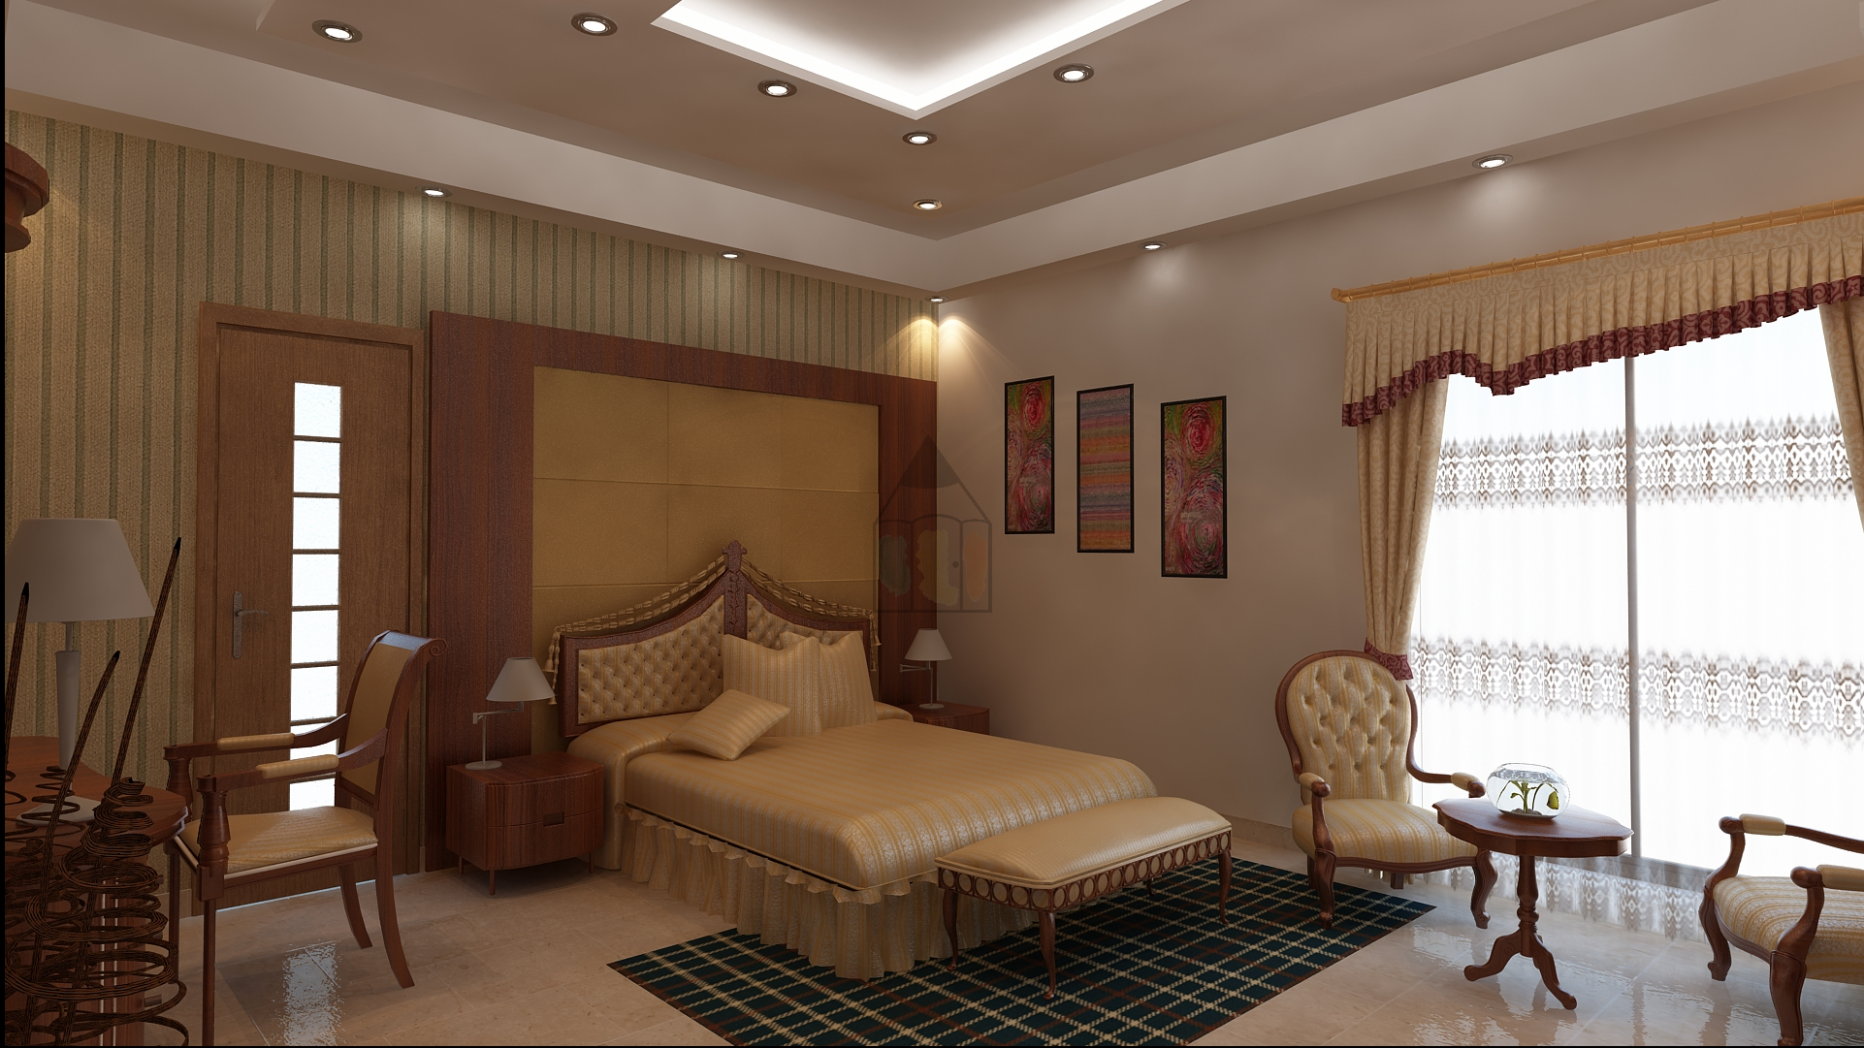 Pakistani bedroom design. In Pakistan, clients prefer their ..